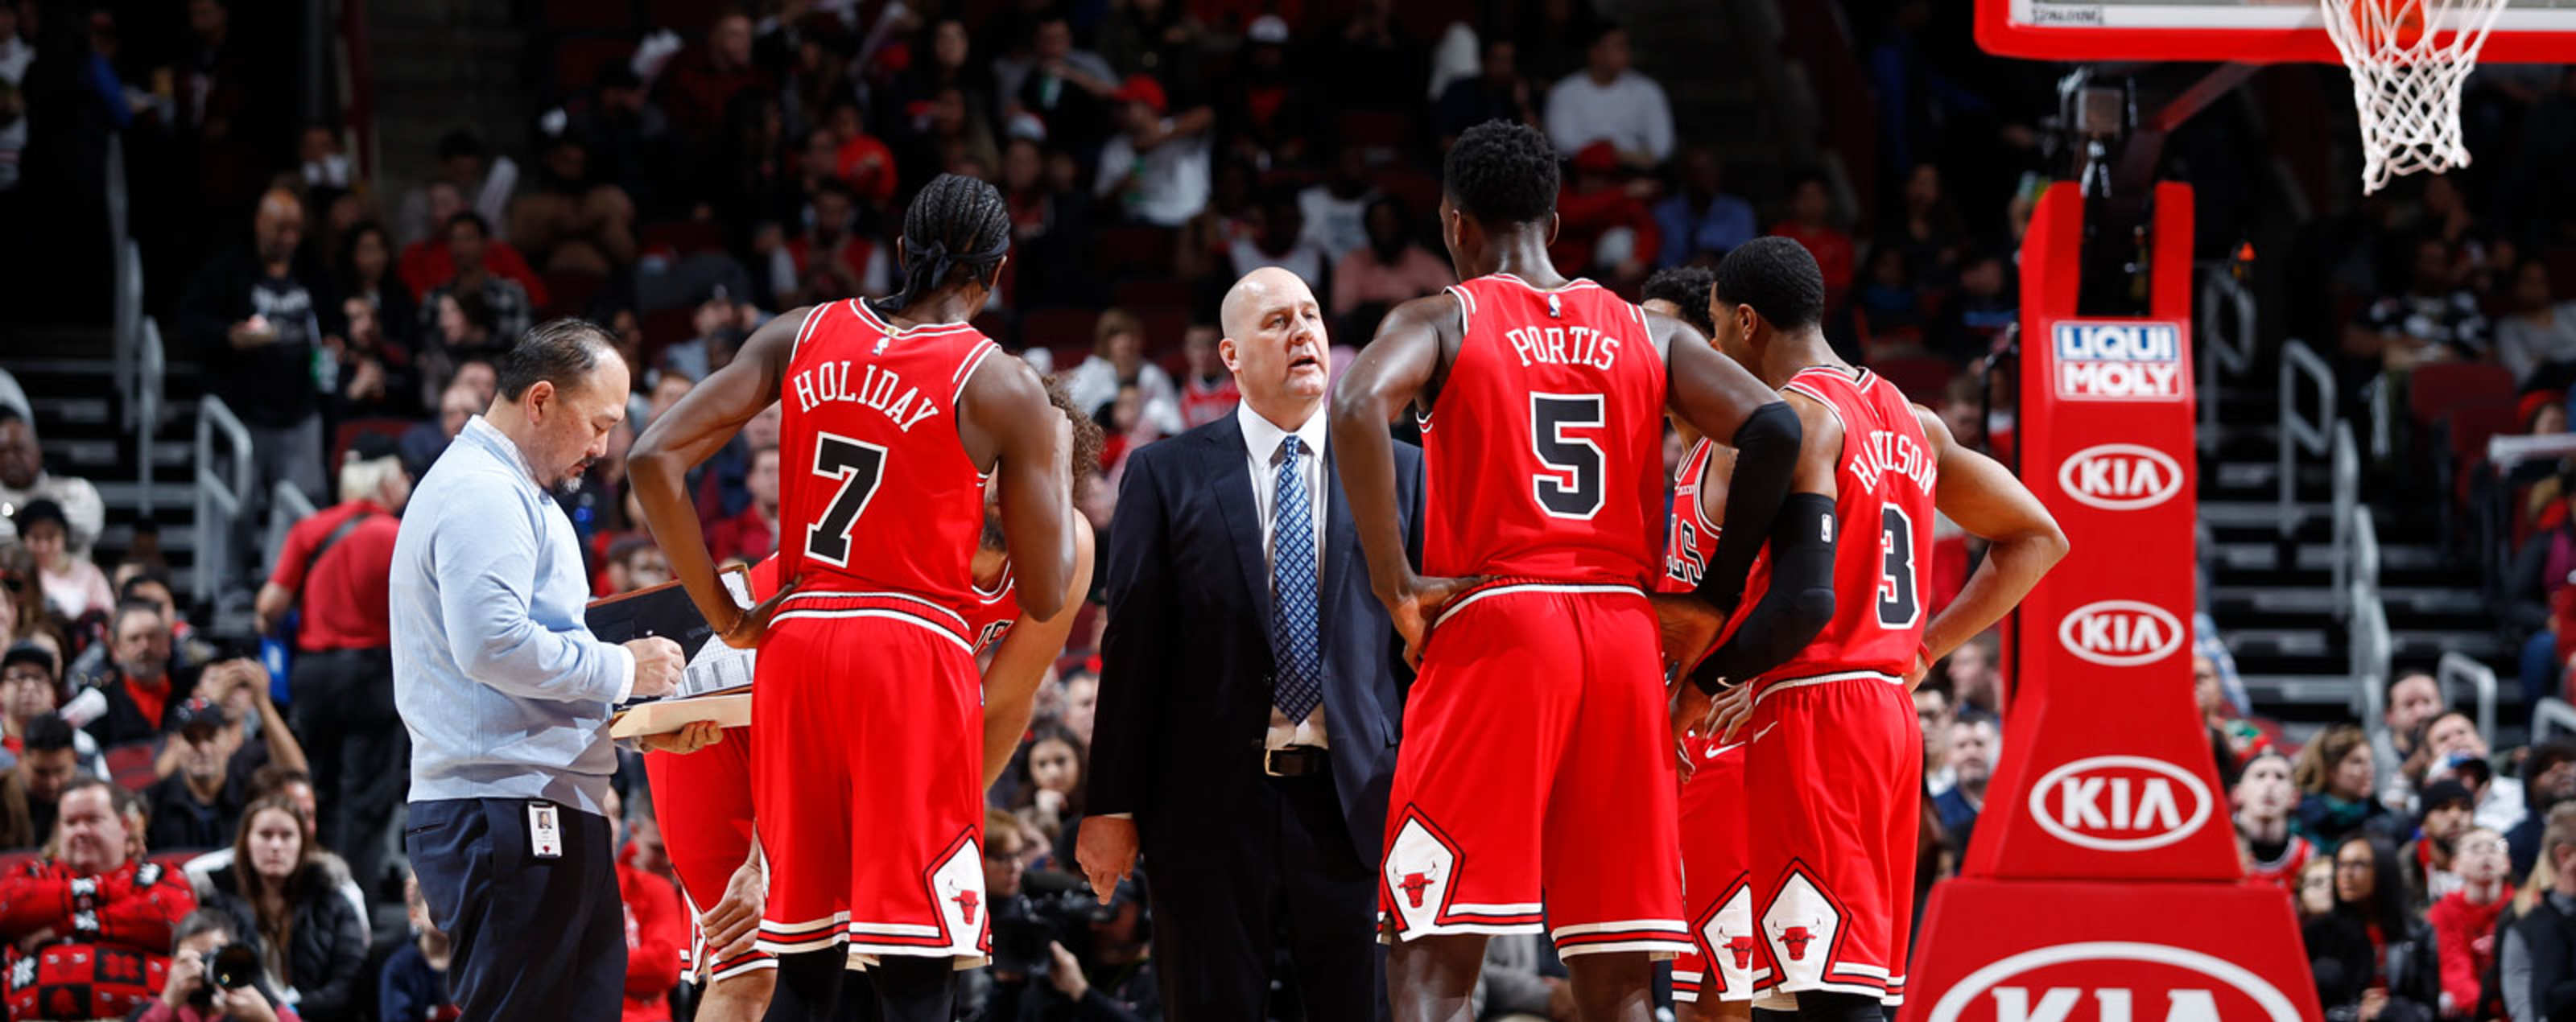 8822598e453 The Chicago Bulls huddle during a timeout against the Brooklyn Nets.